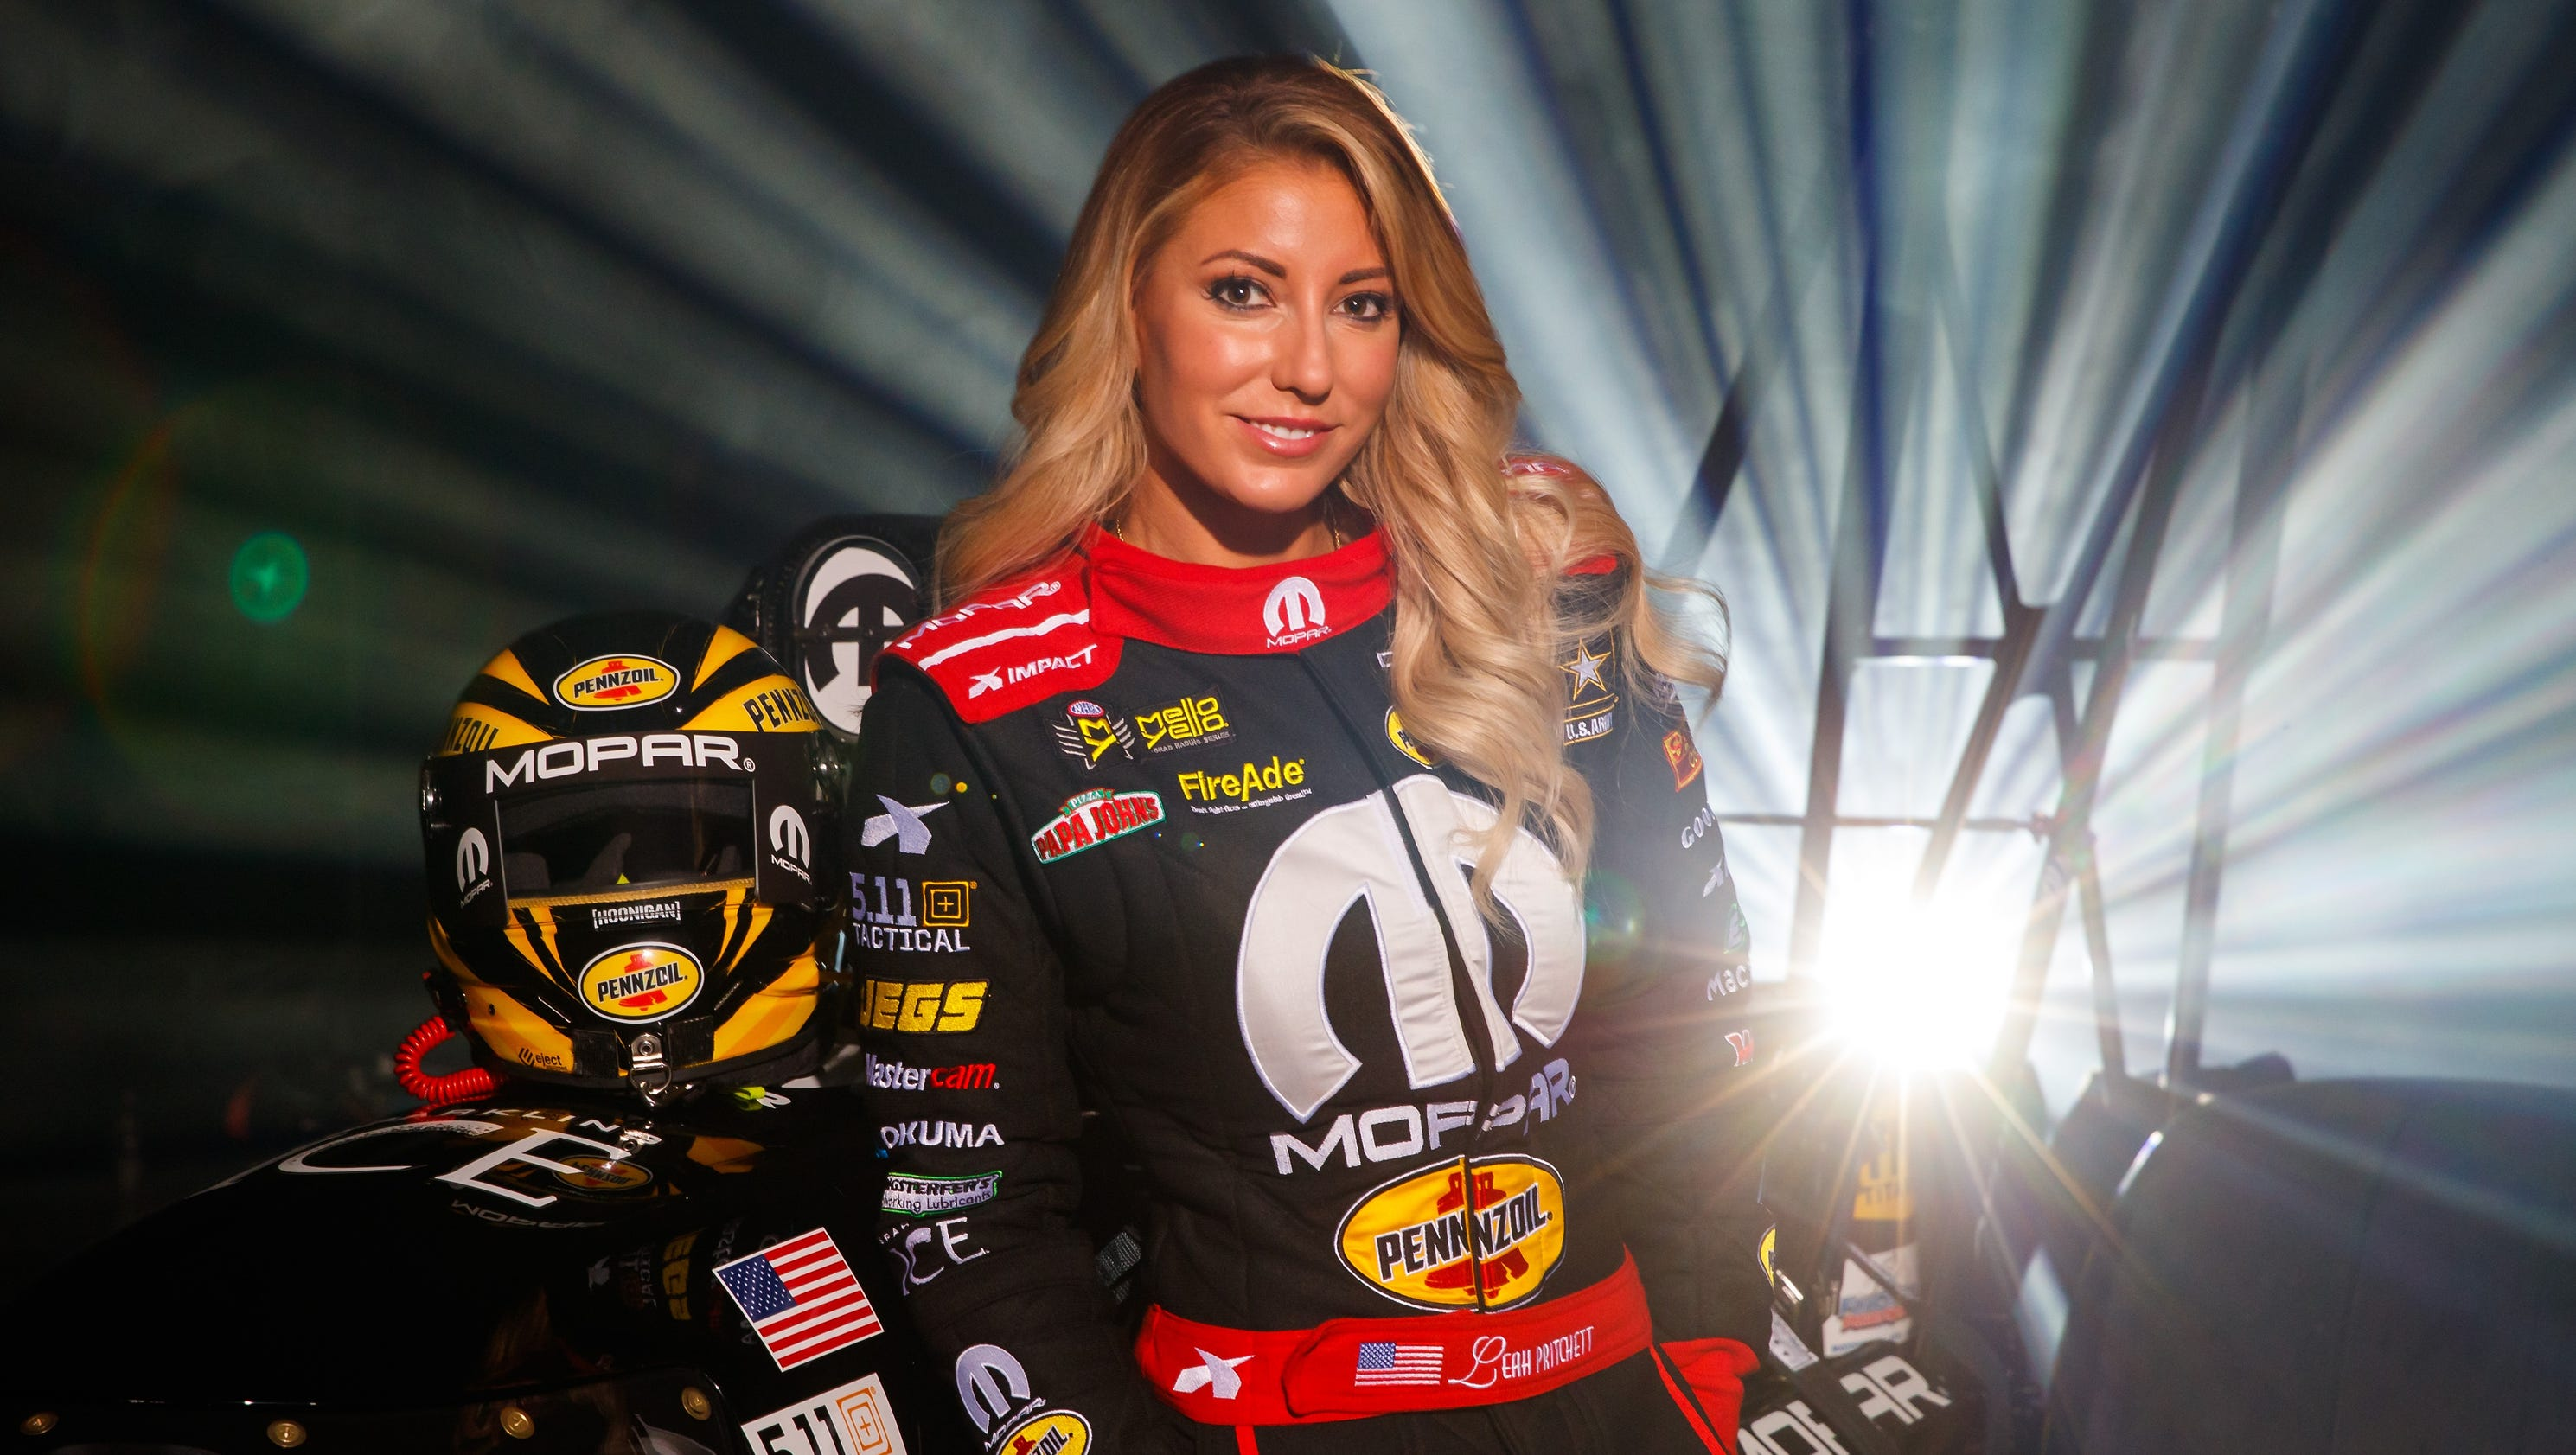 NHRA Top Fuel driver Leah Pritchett